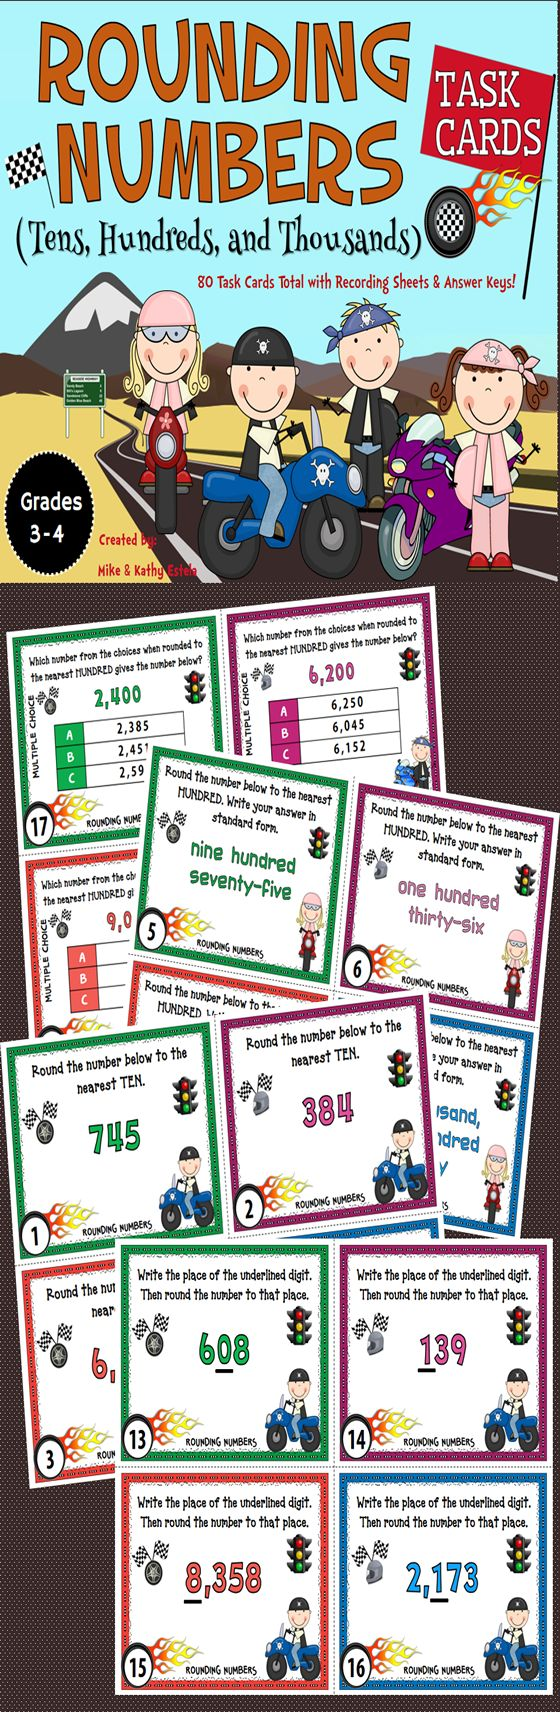 17 Best Ideas About Rounding Numbers On Pinterest Math